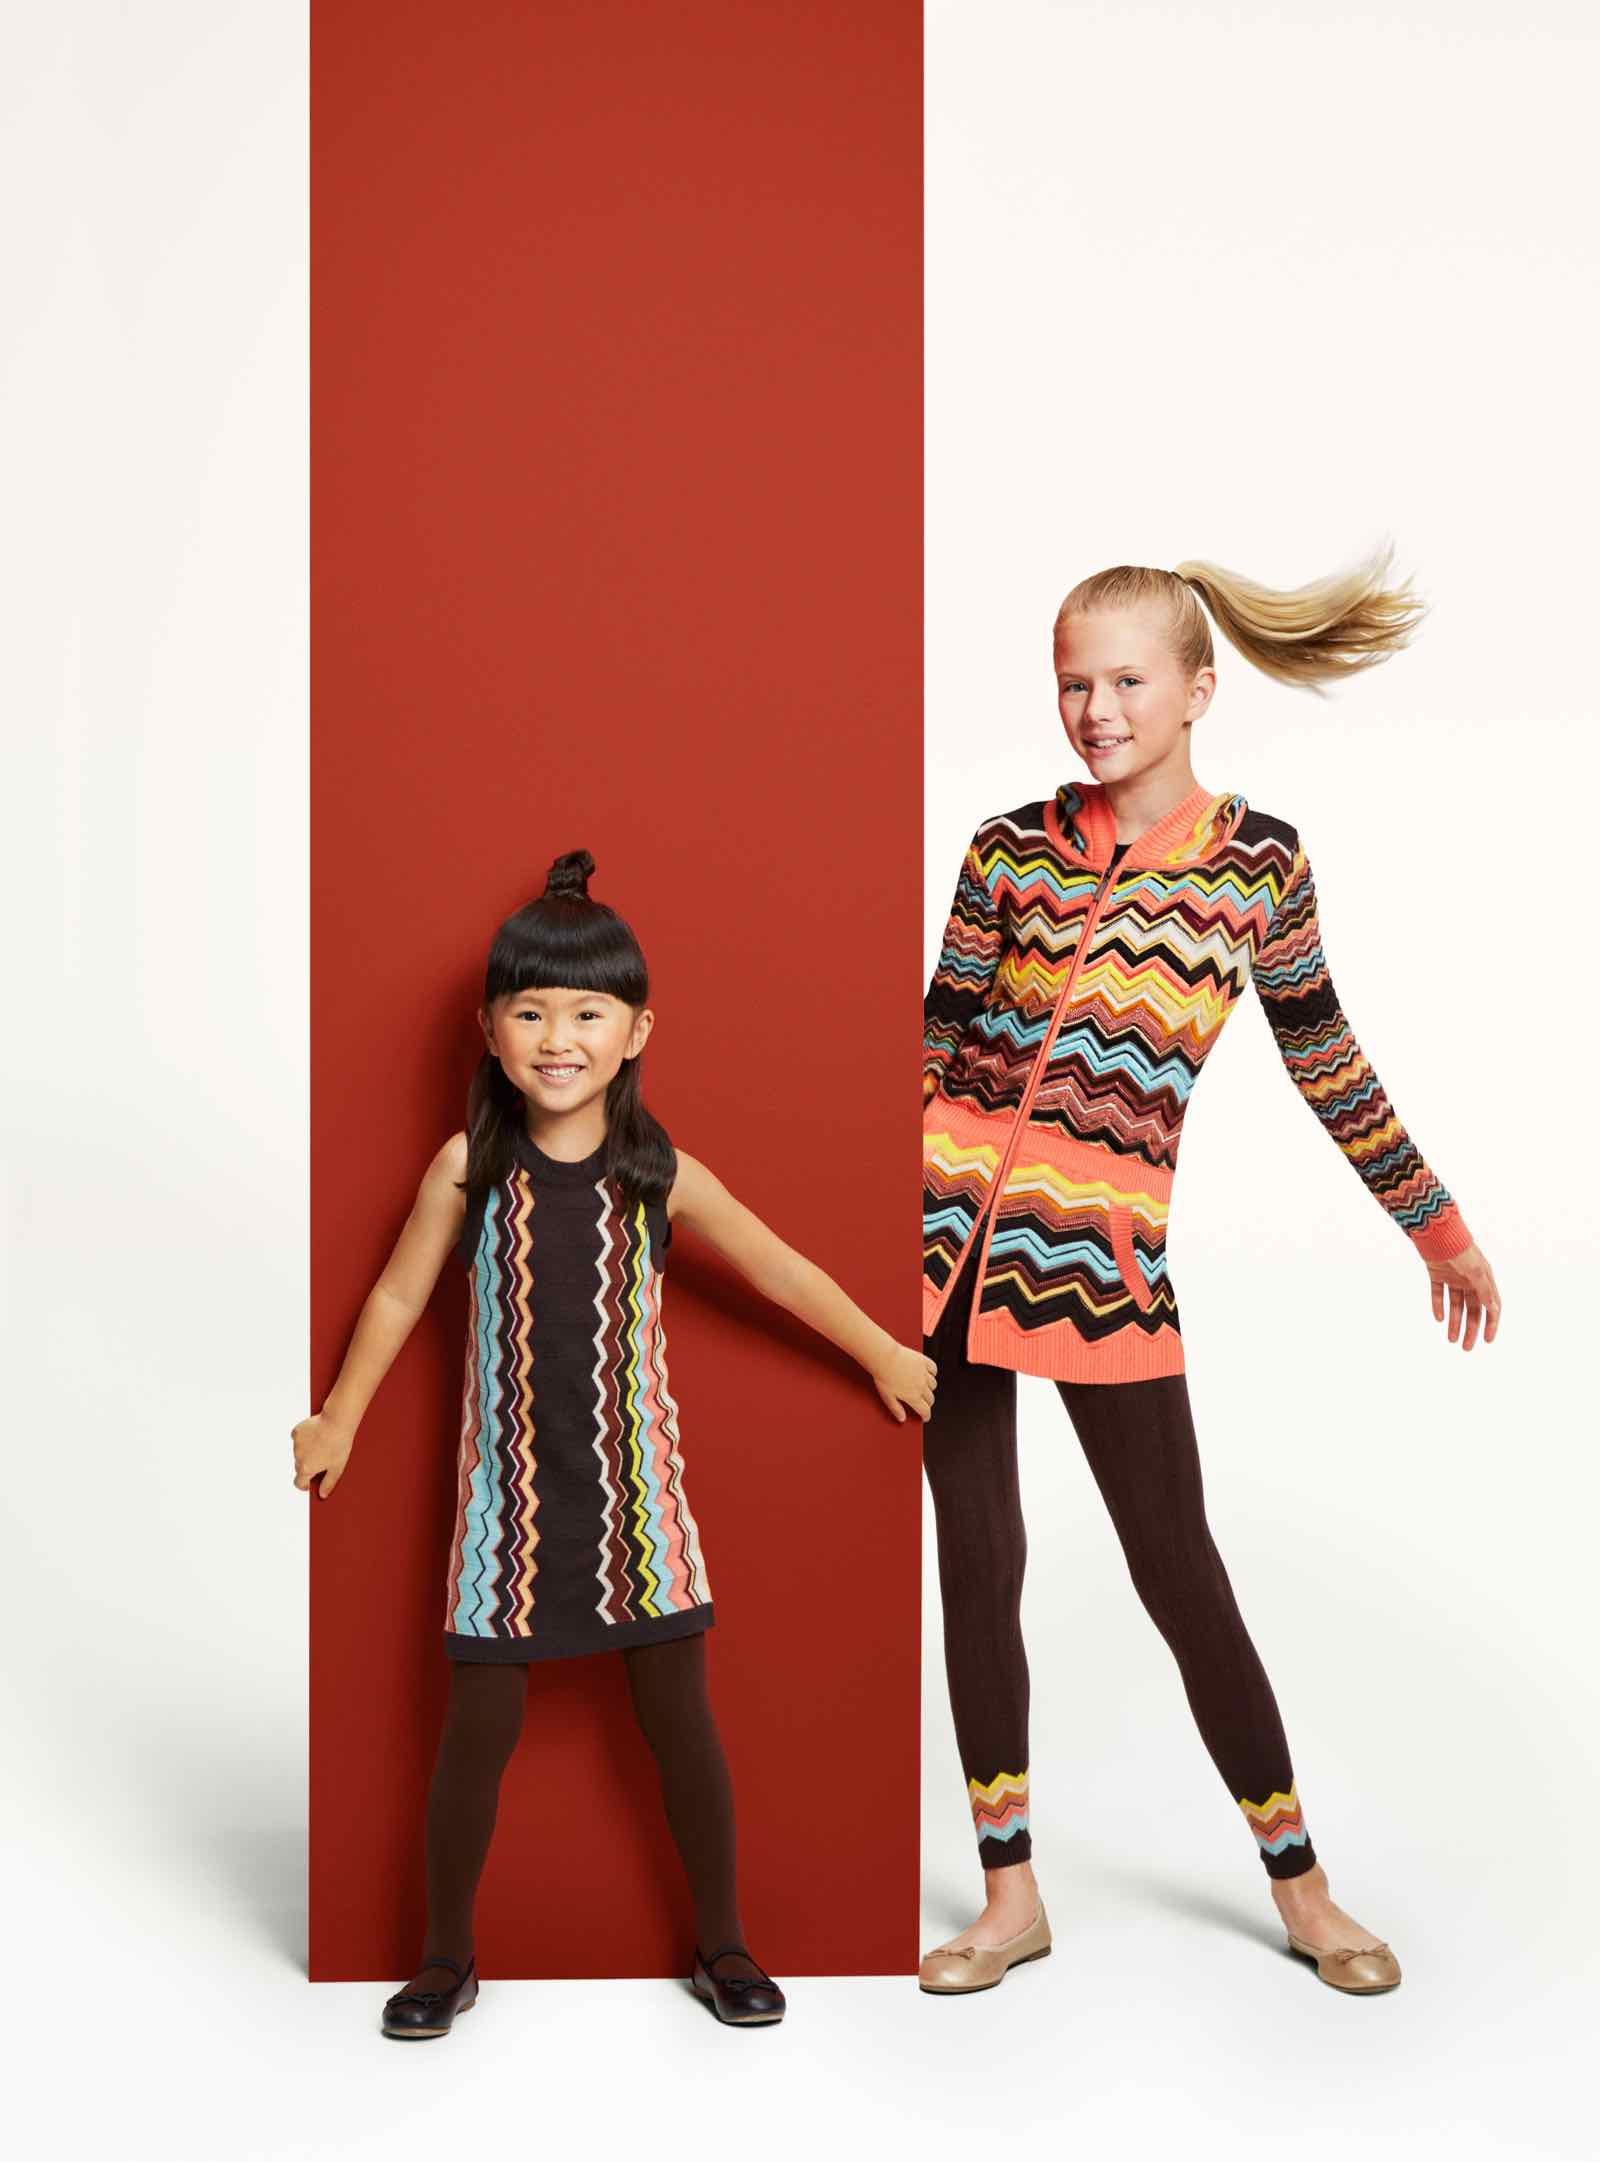 Target's 20th Anniversary Collection lookbook